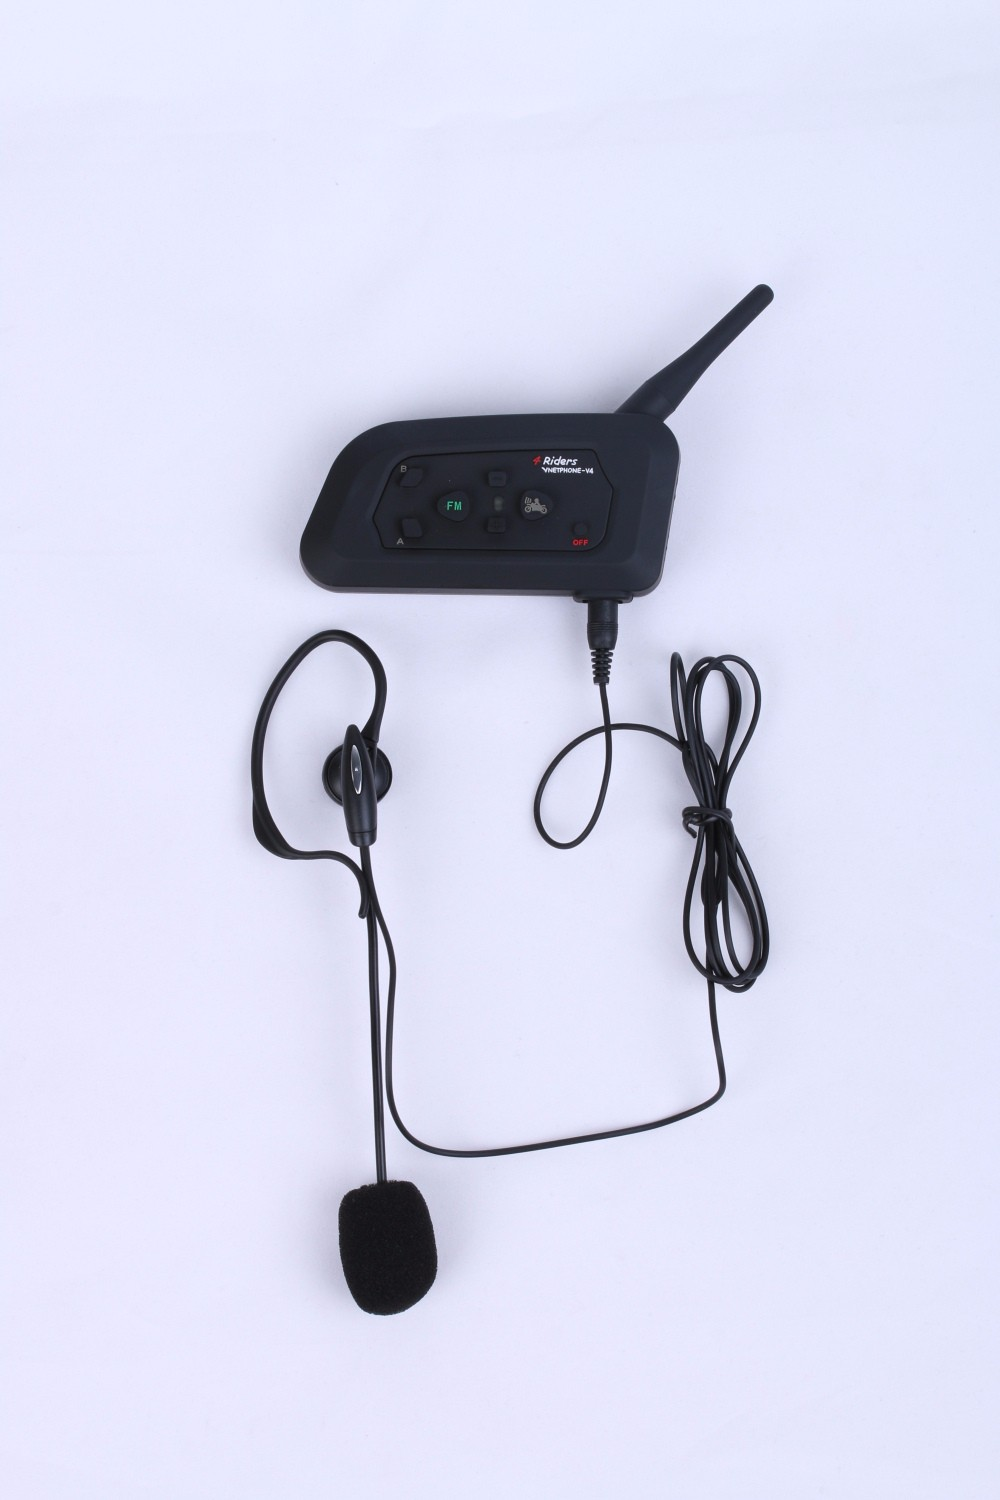 Hands-free V4C 1200m Football Sport Referee Bluetooth Communication System Intercom